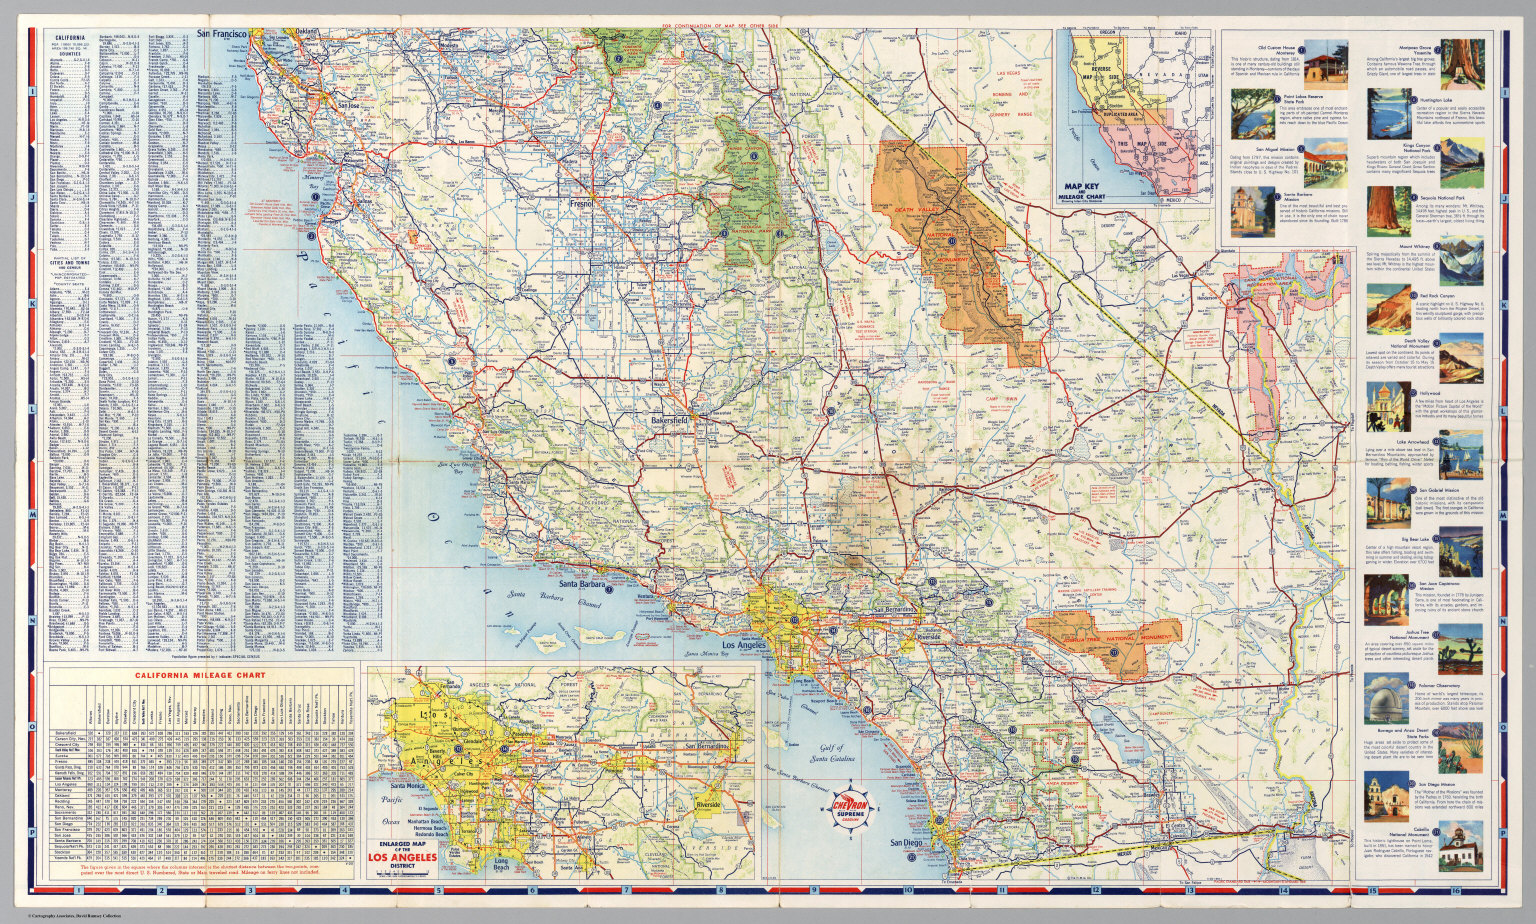 South Half Road Map Of California David Rumsey Historical Map - Ca road map